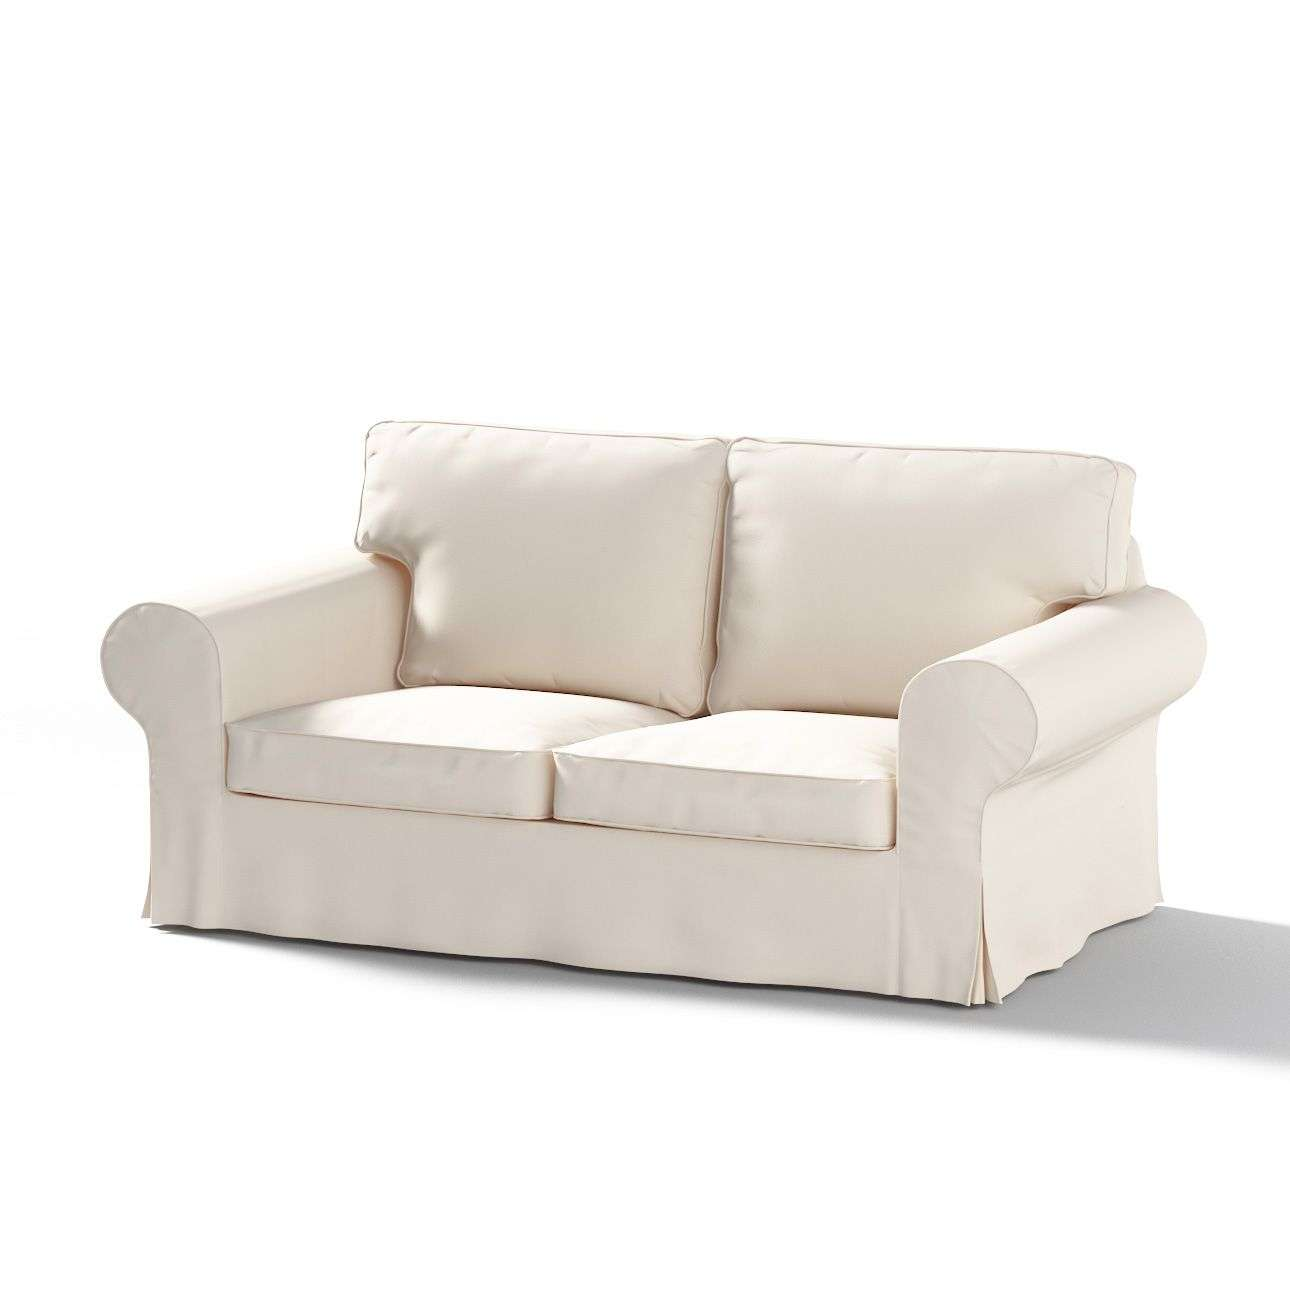 Ikea ektorp sofa and furniture covers for Furniture covers